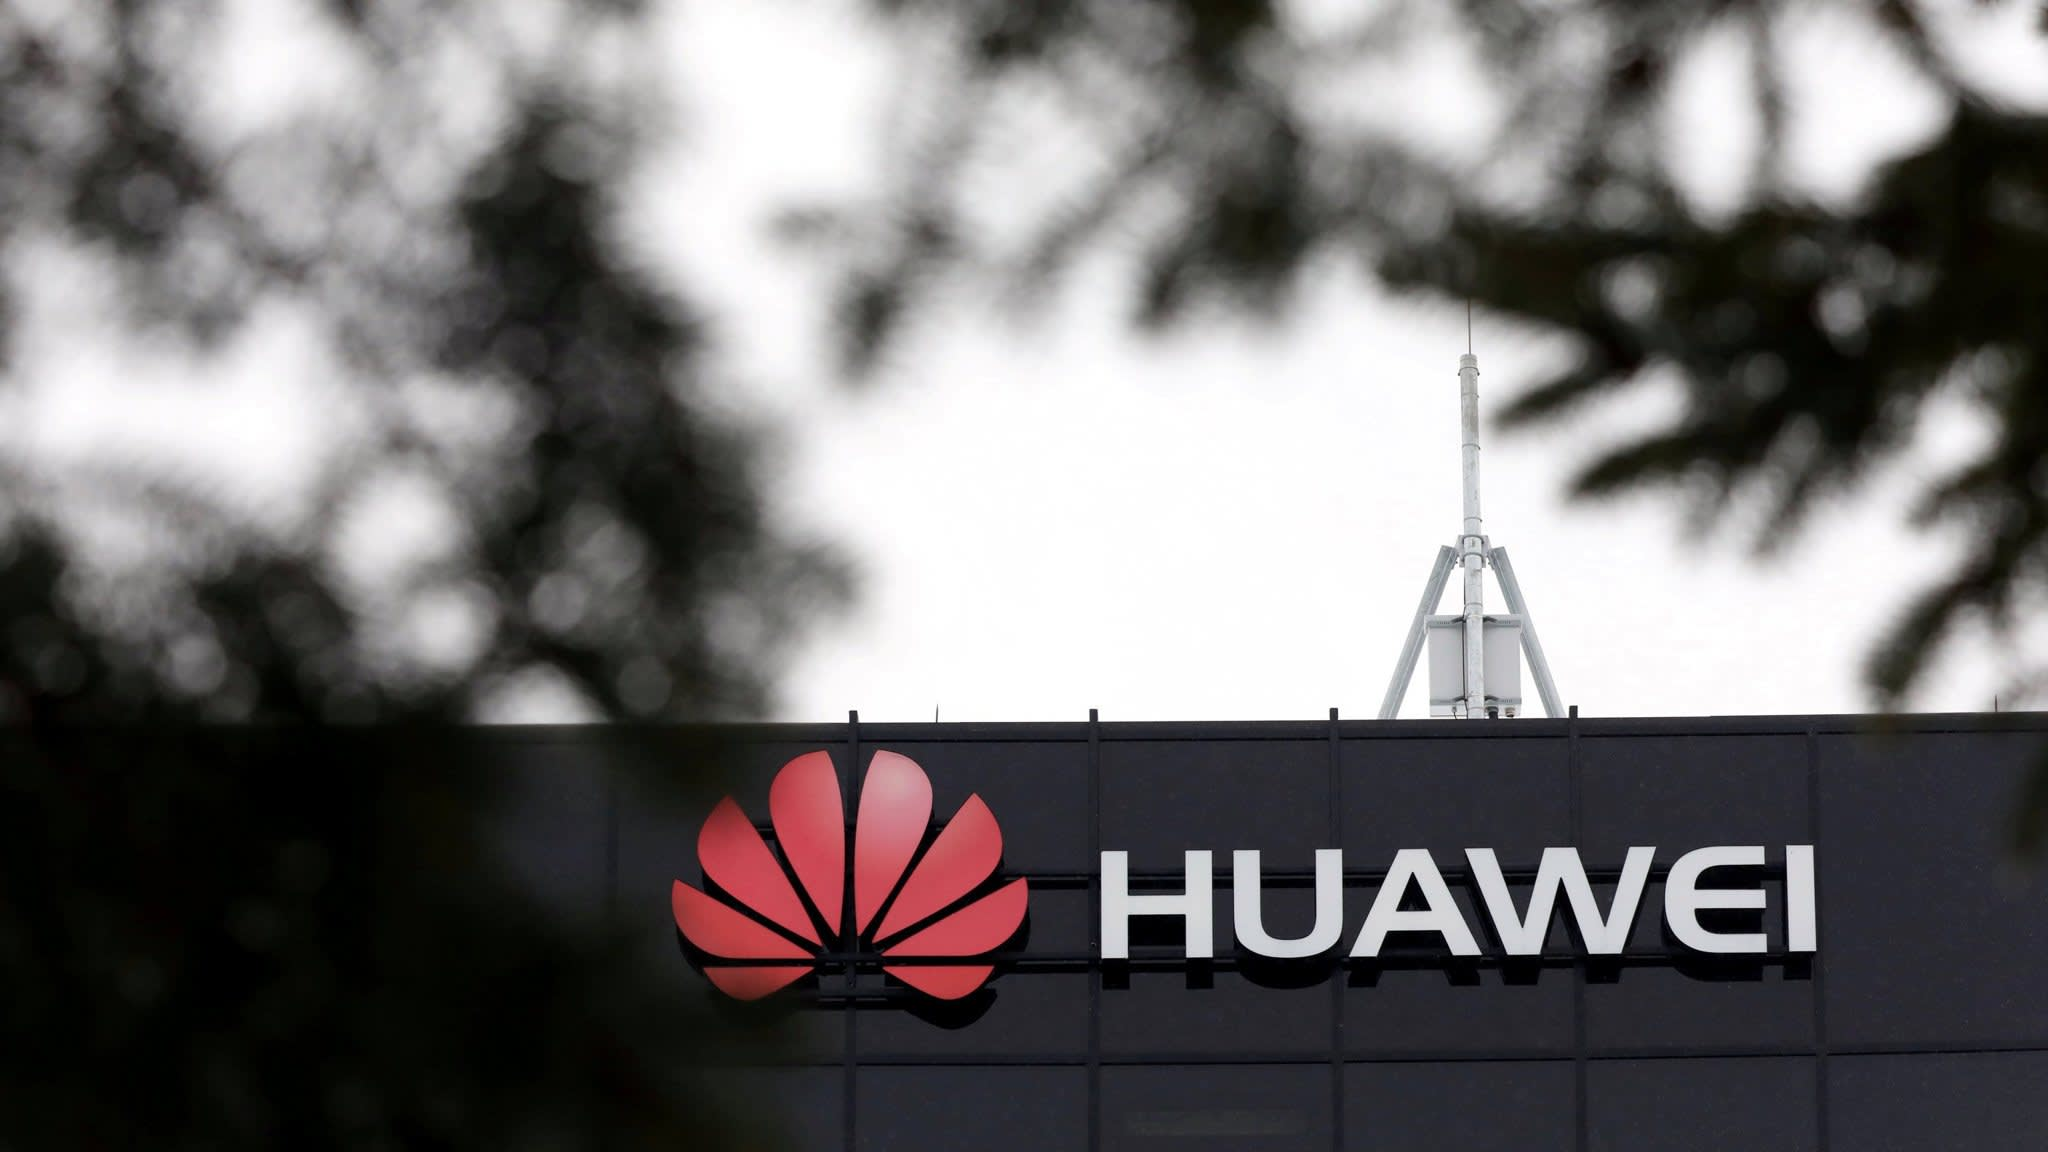 Huawei spat comes as China builds lead in 5G